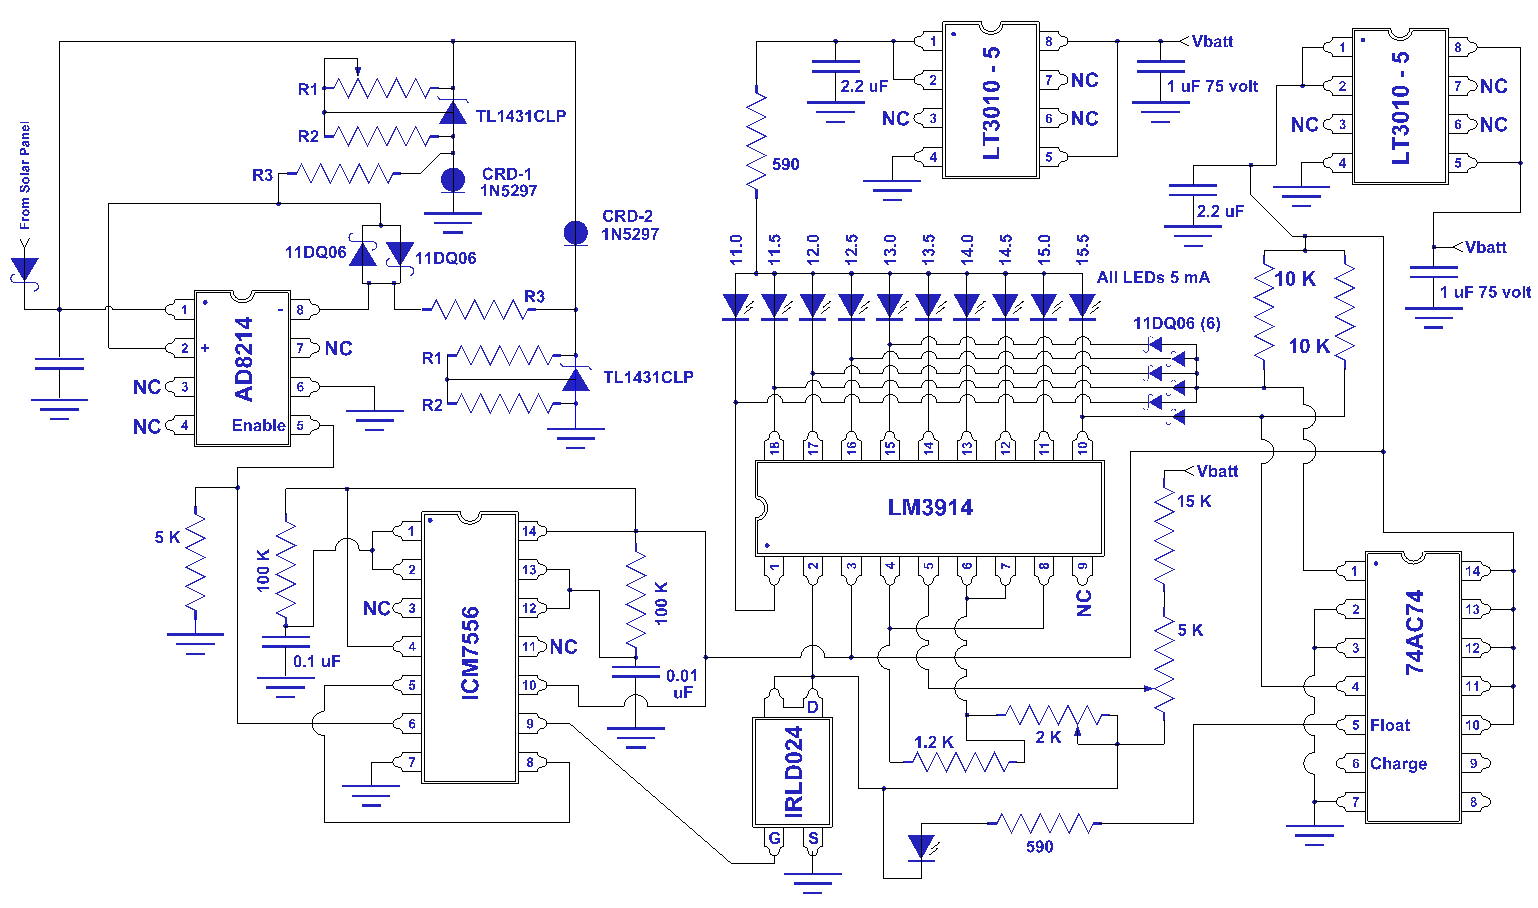 solar charge controller circuit diagram simple mppt solar rh pinterest com au solar panel 12v regulator circuit solar panel 12v regulator circuit